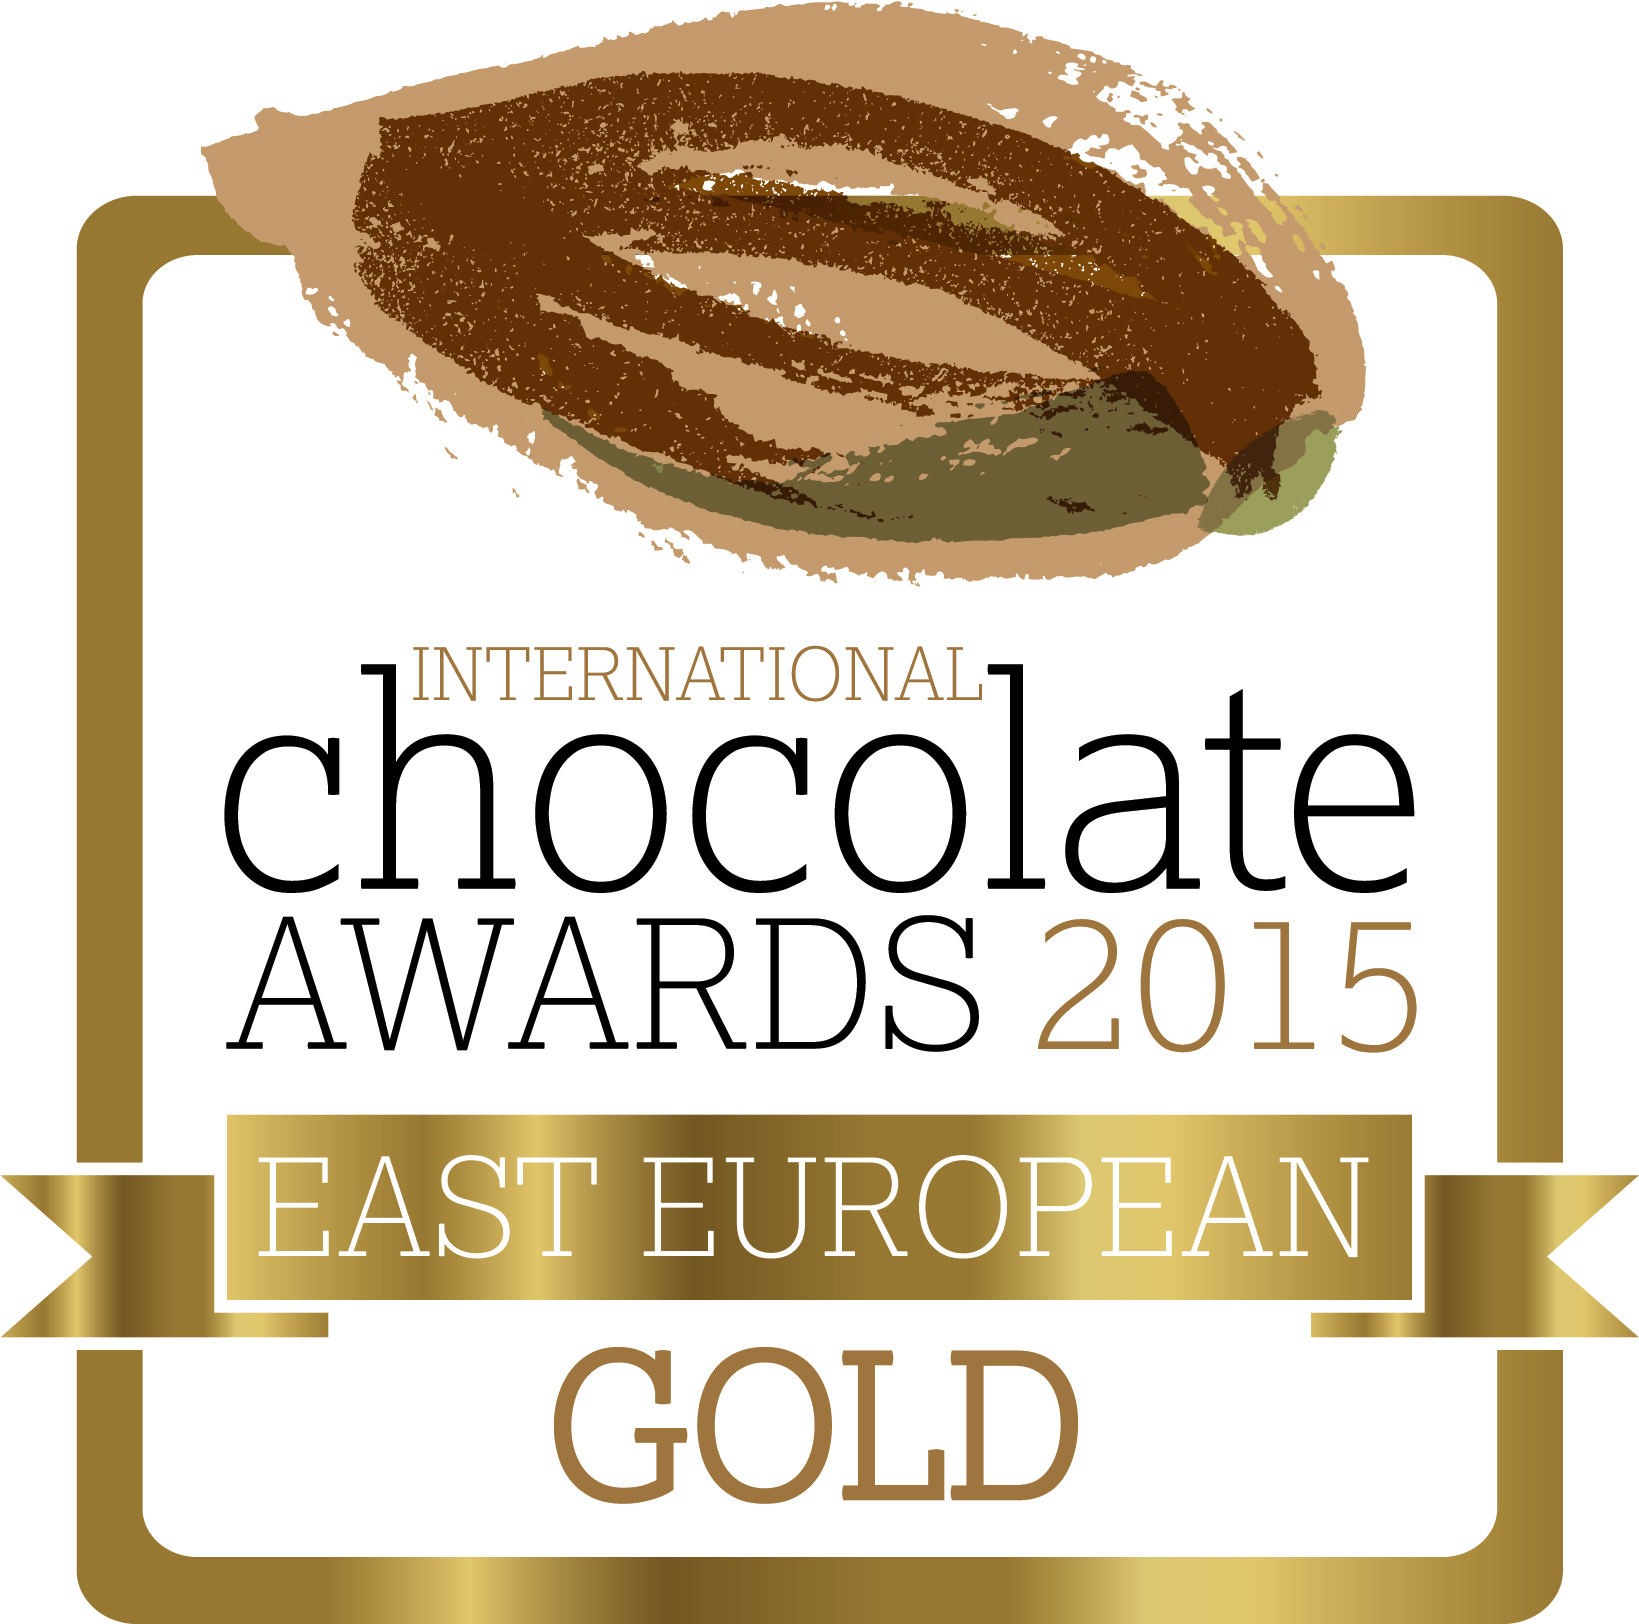 International Chocolate Awards 2015 - Gold - East Europe RGB - web